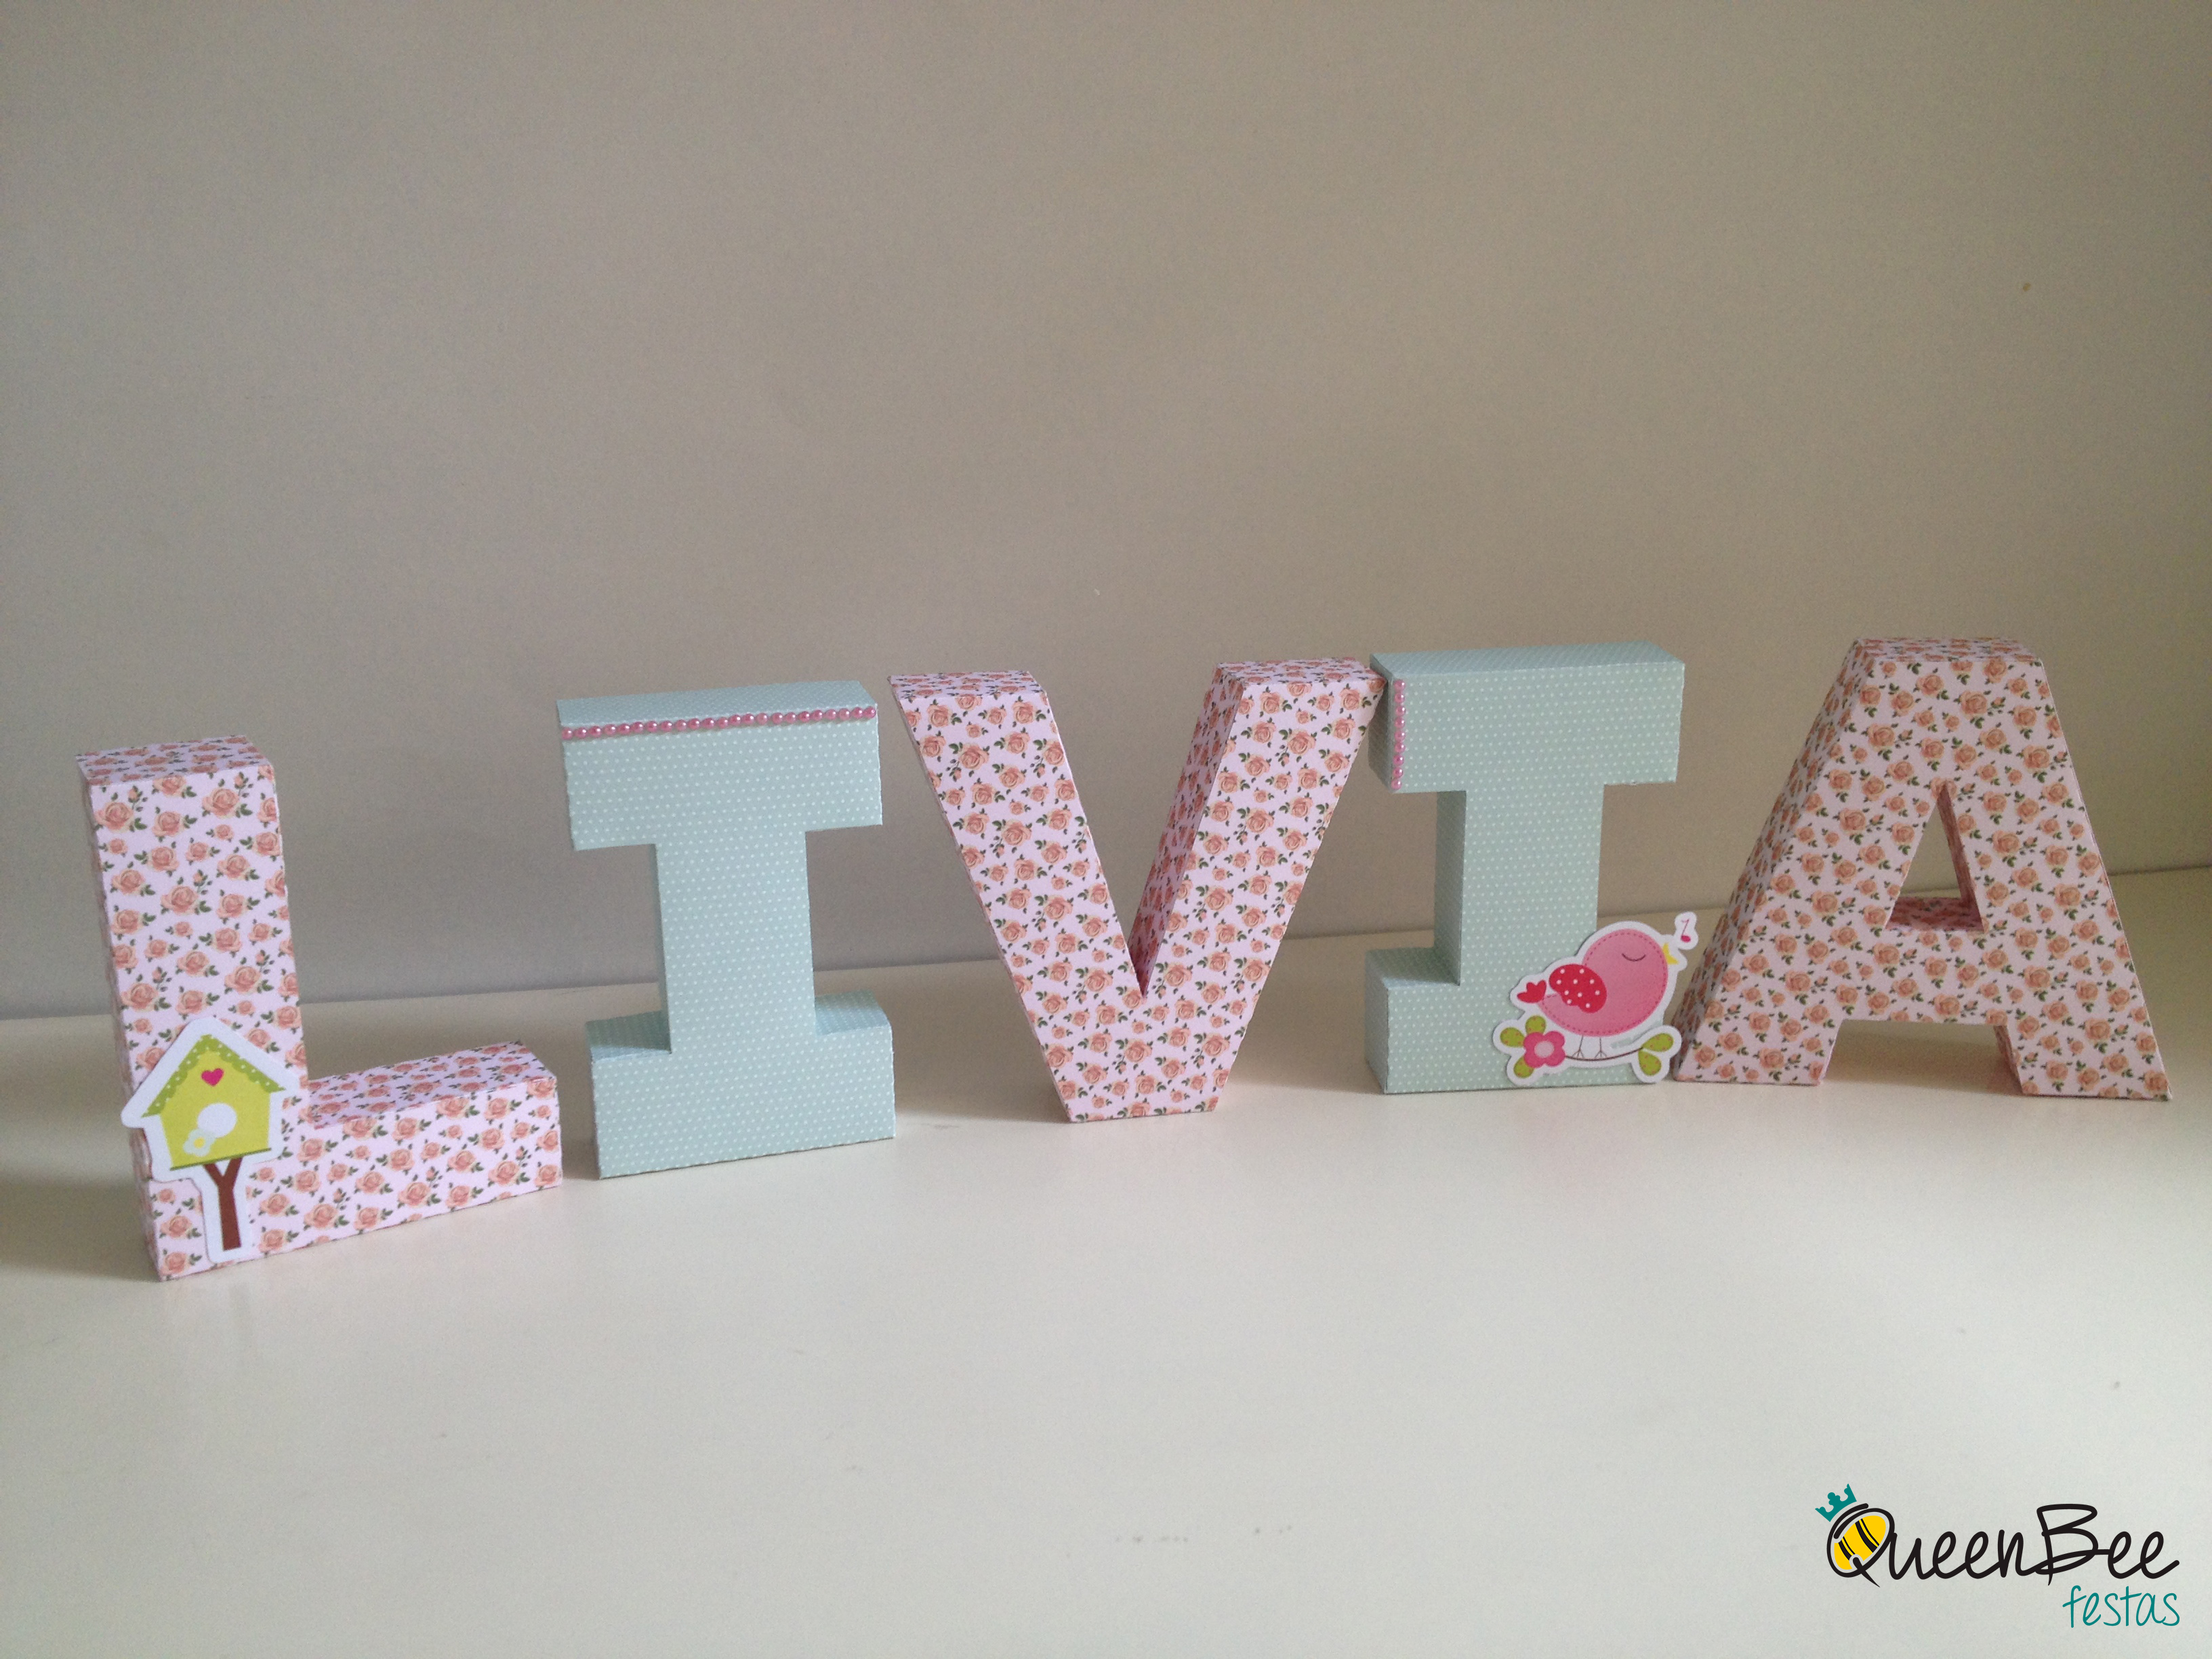 Letra 3d para decorar queen bee festas elo7 - Letras scrabble para decorar ...